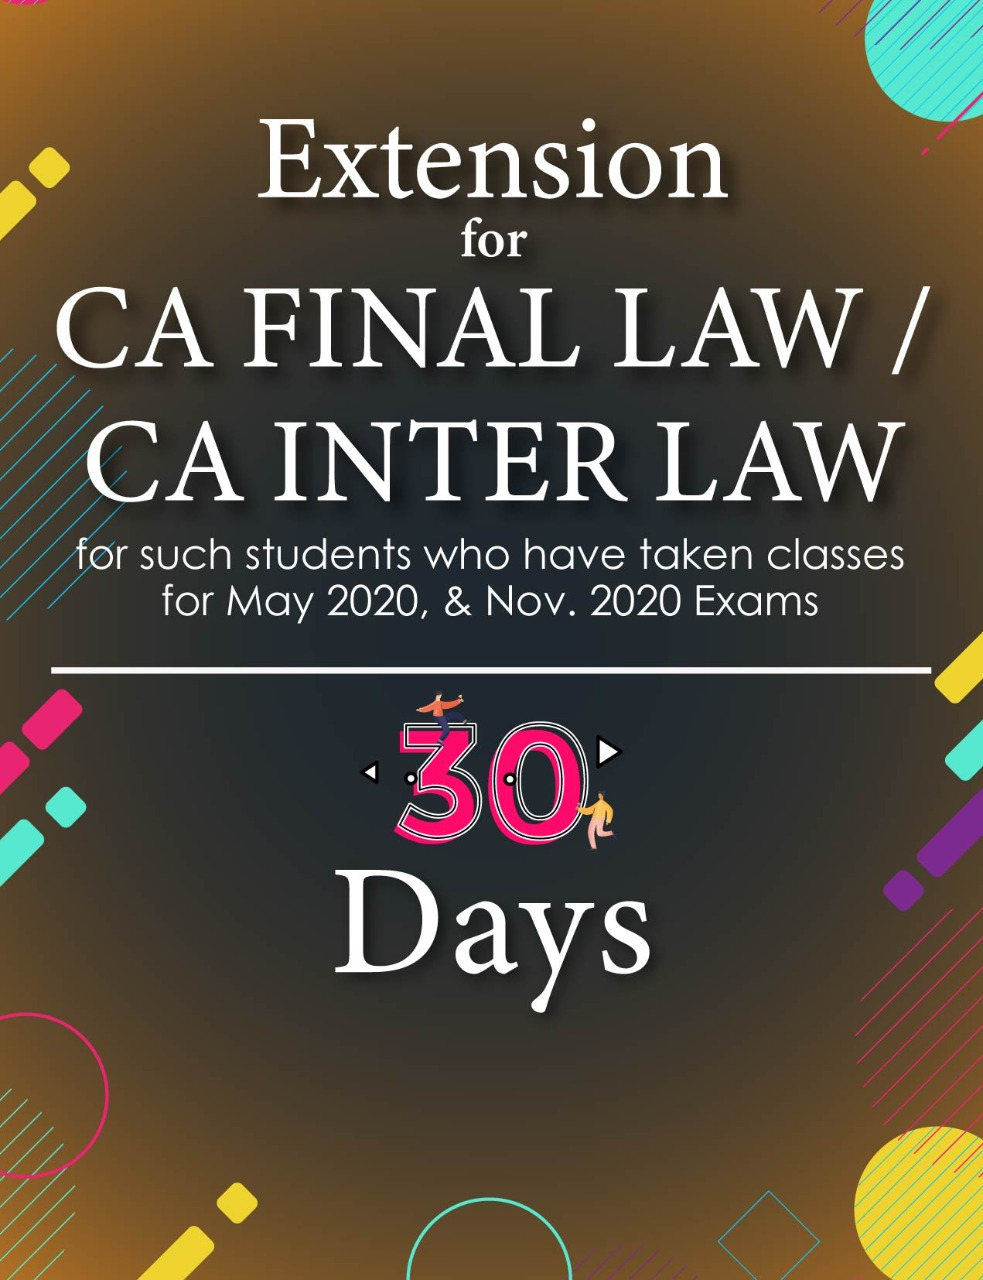 extension-of-ca-final-law-and-ca-inter-law-lectures-for-30-days